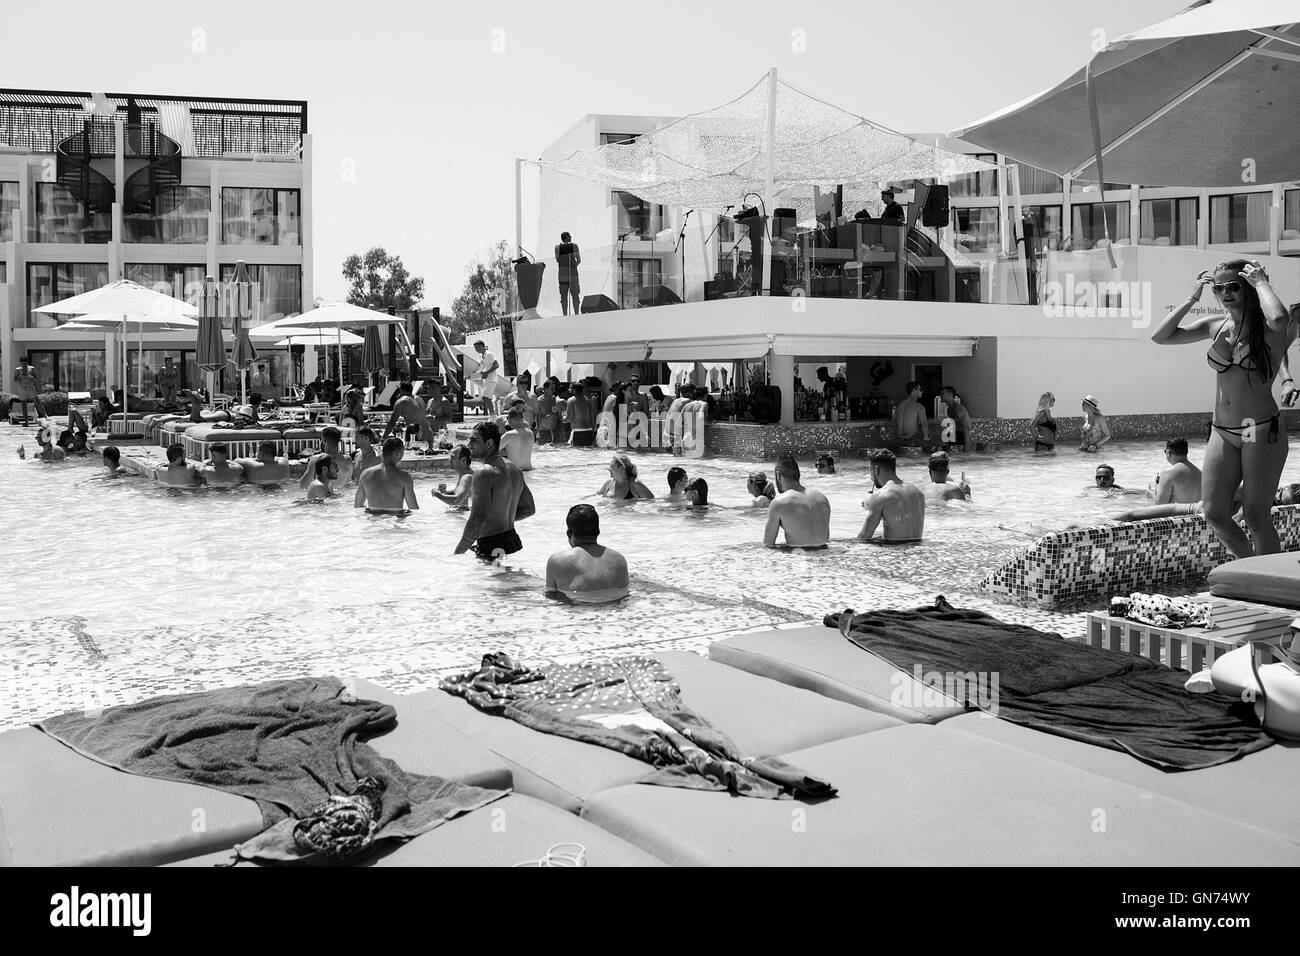 Pool party and poolside at Hard Rock Hotel in Ibiza. High end resort for the younger generation who like to party - Stock Image